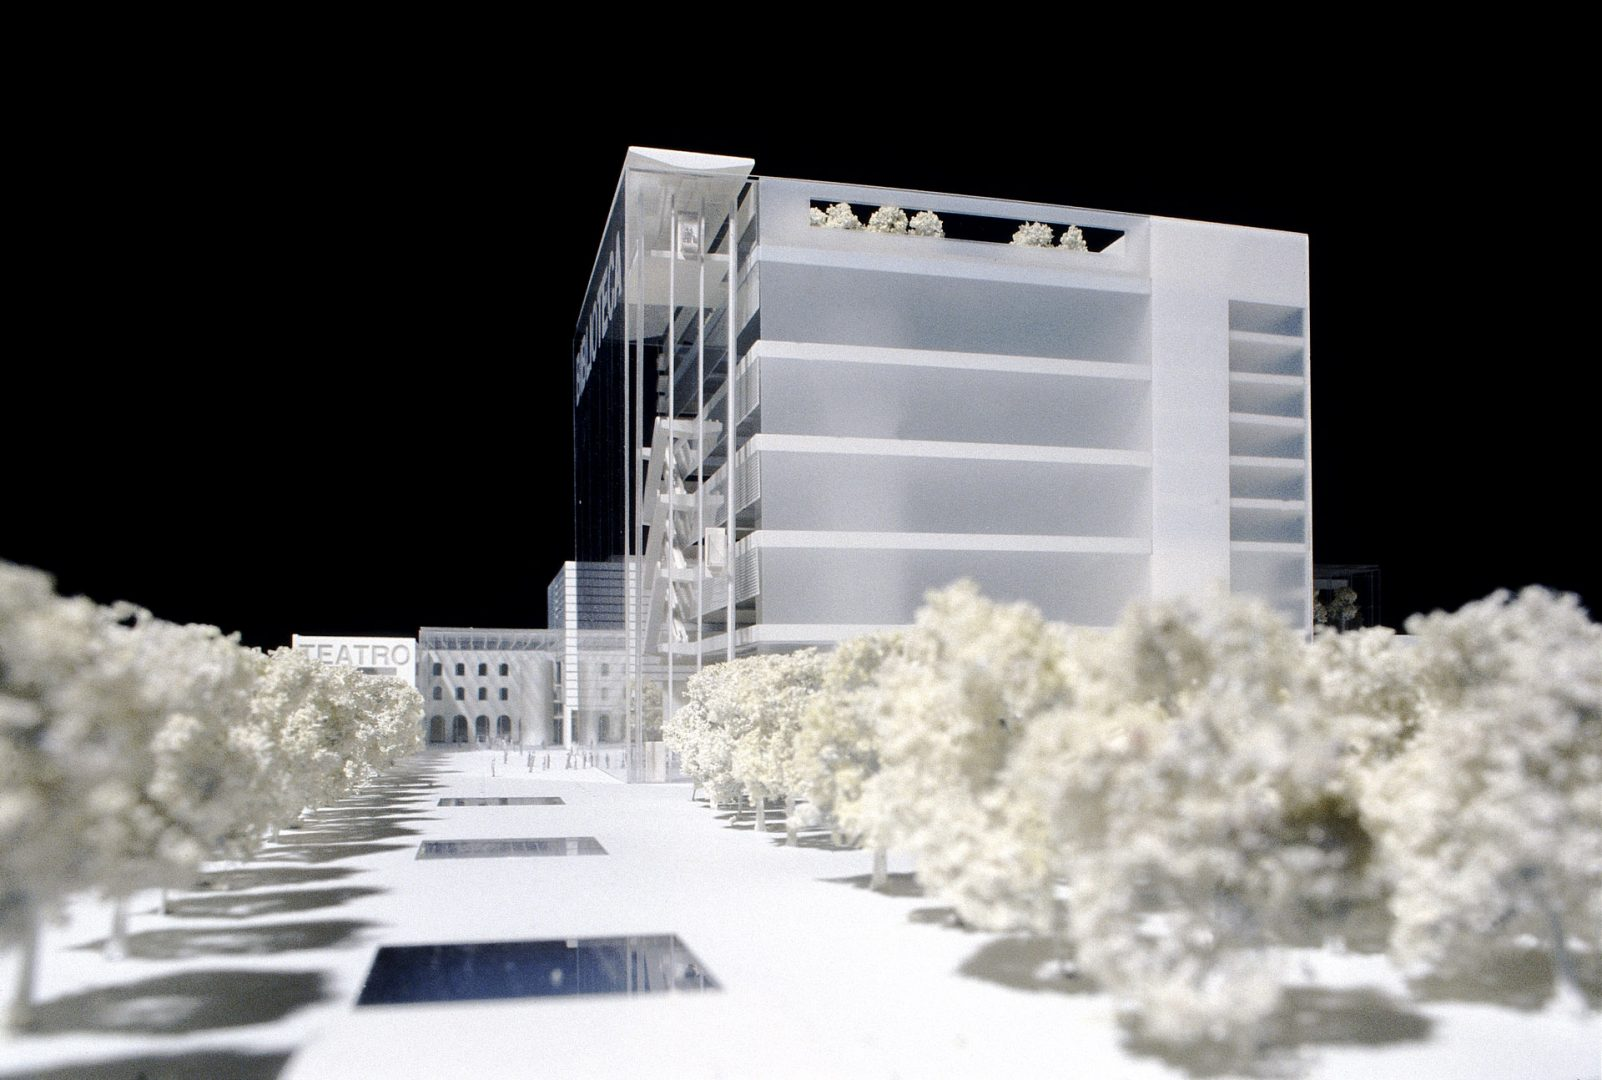 3D model of the proposed Centro Culturale di Torino from the new piazza with city library